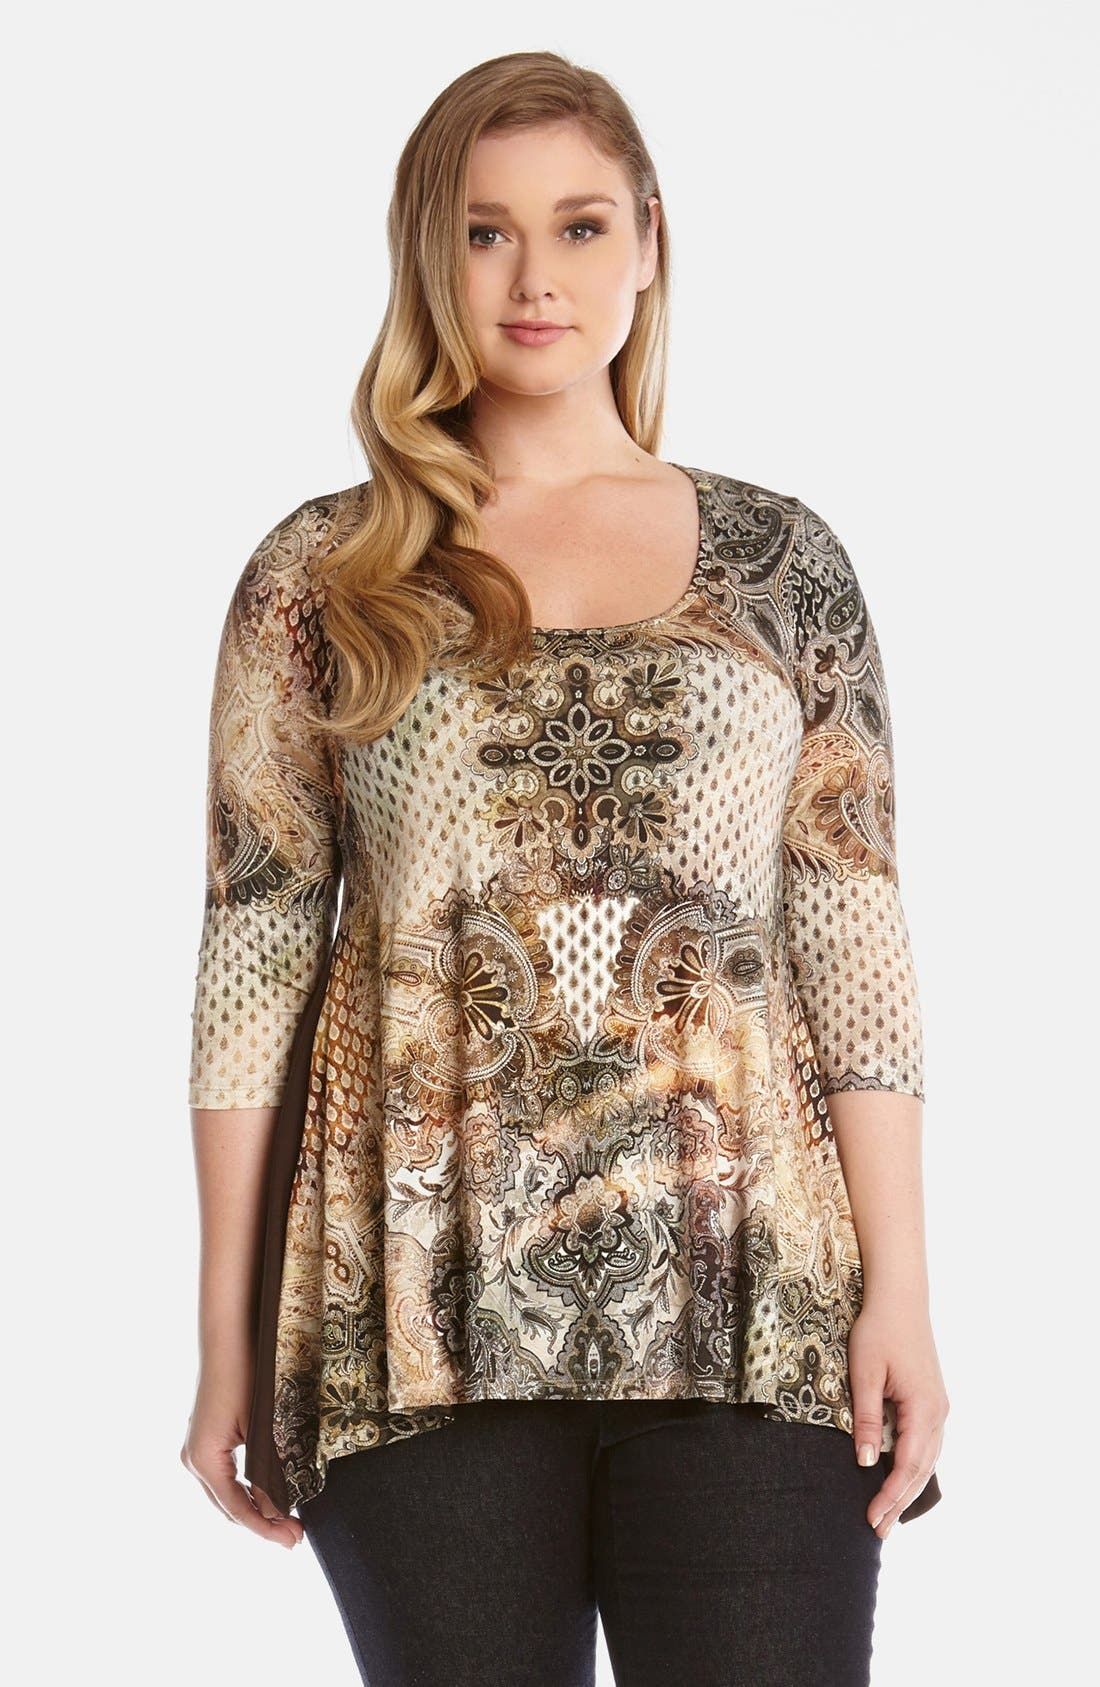 Alternate Image 1 Selected - Karen Kane 'Canyon' Print Handkerchief Top (Plus Size)